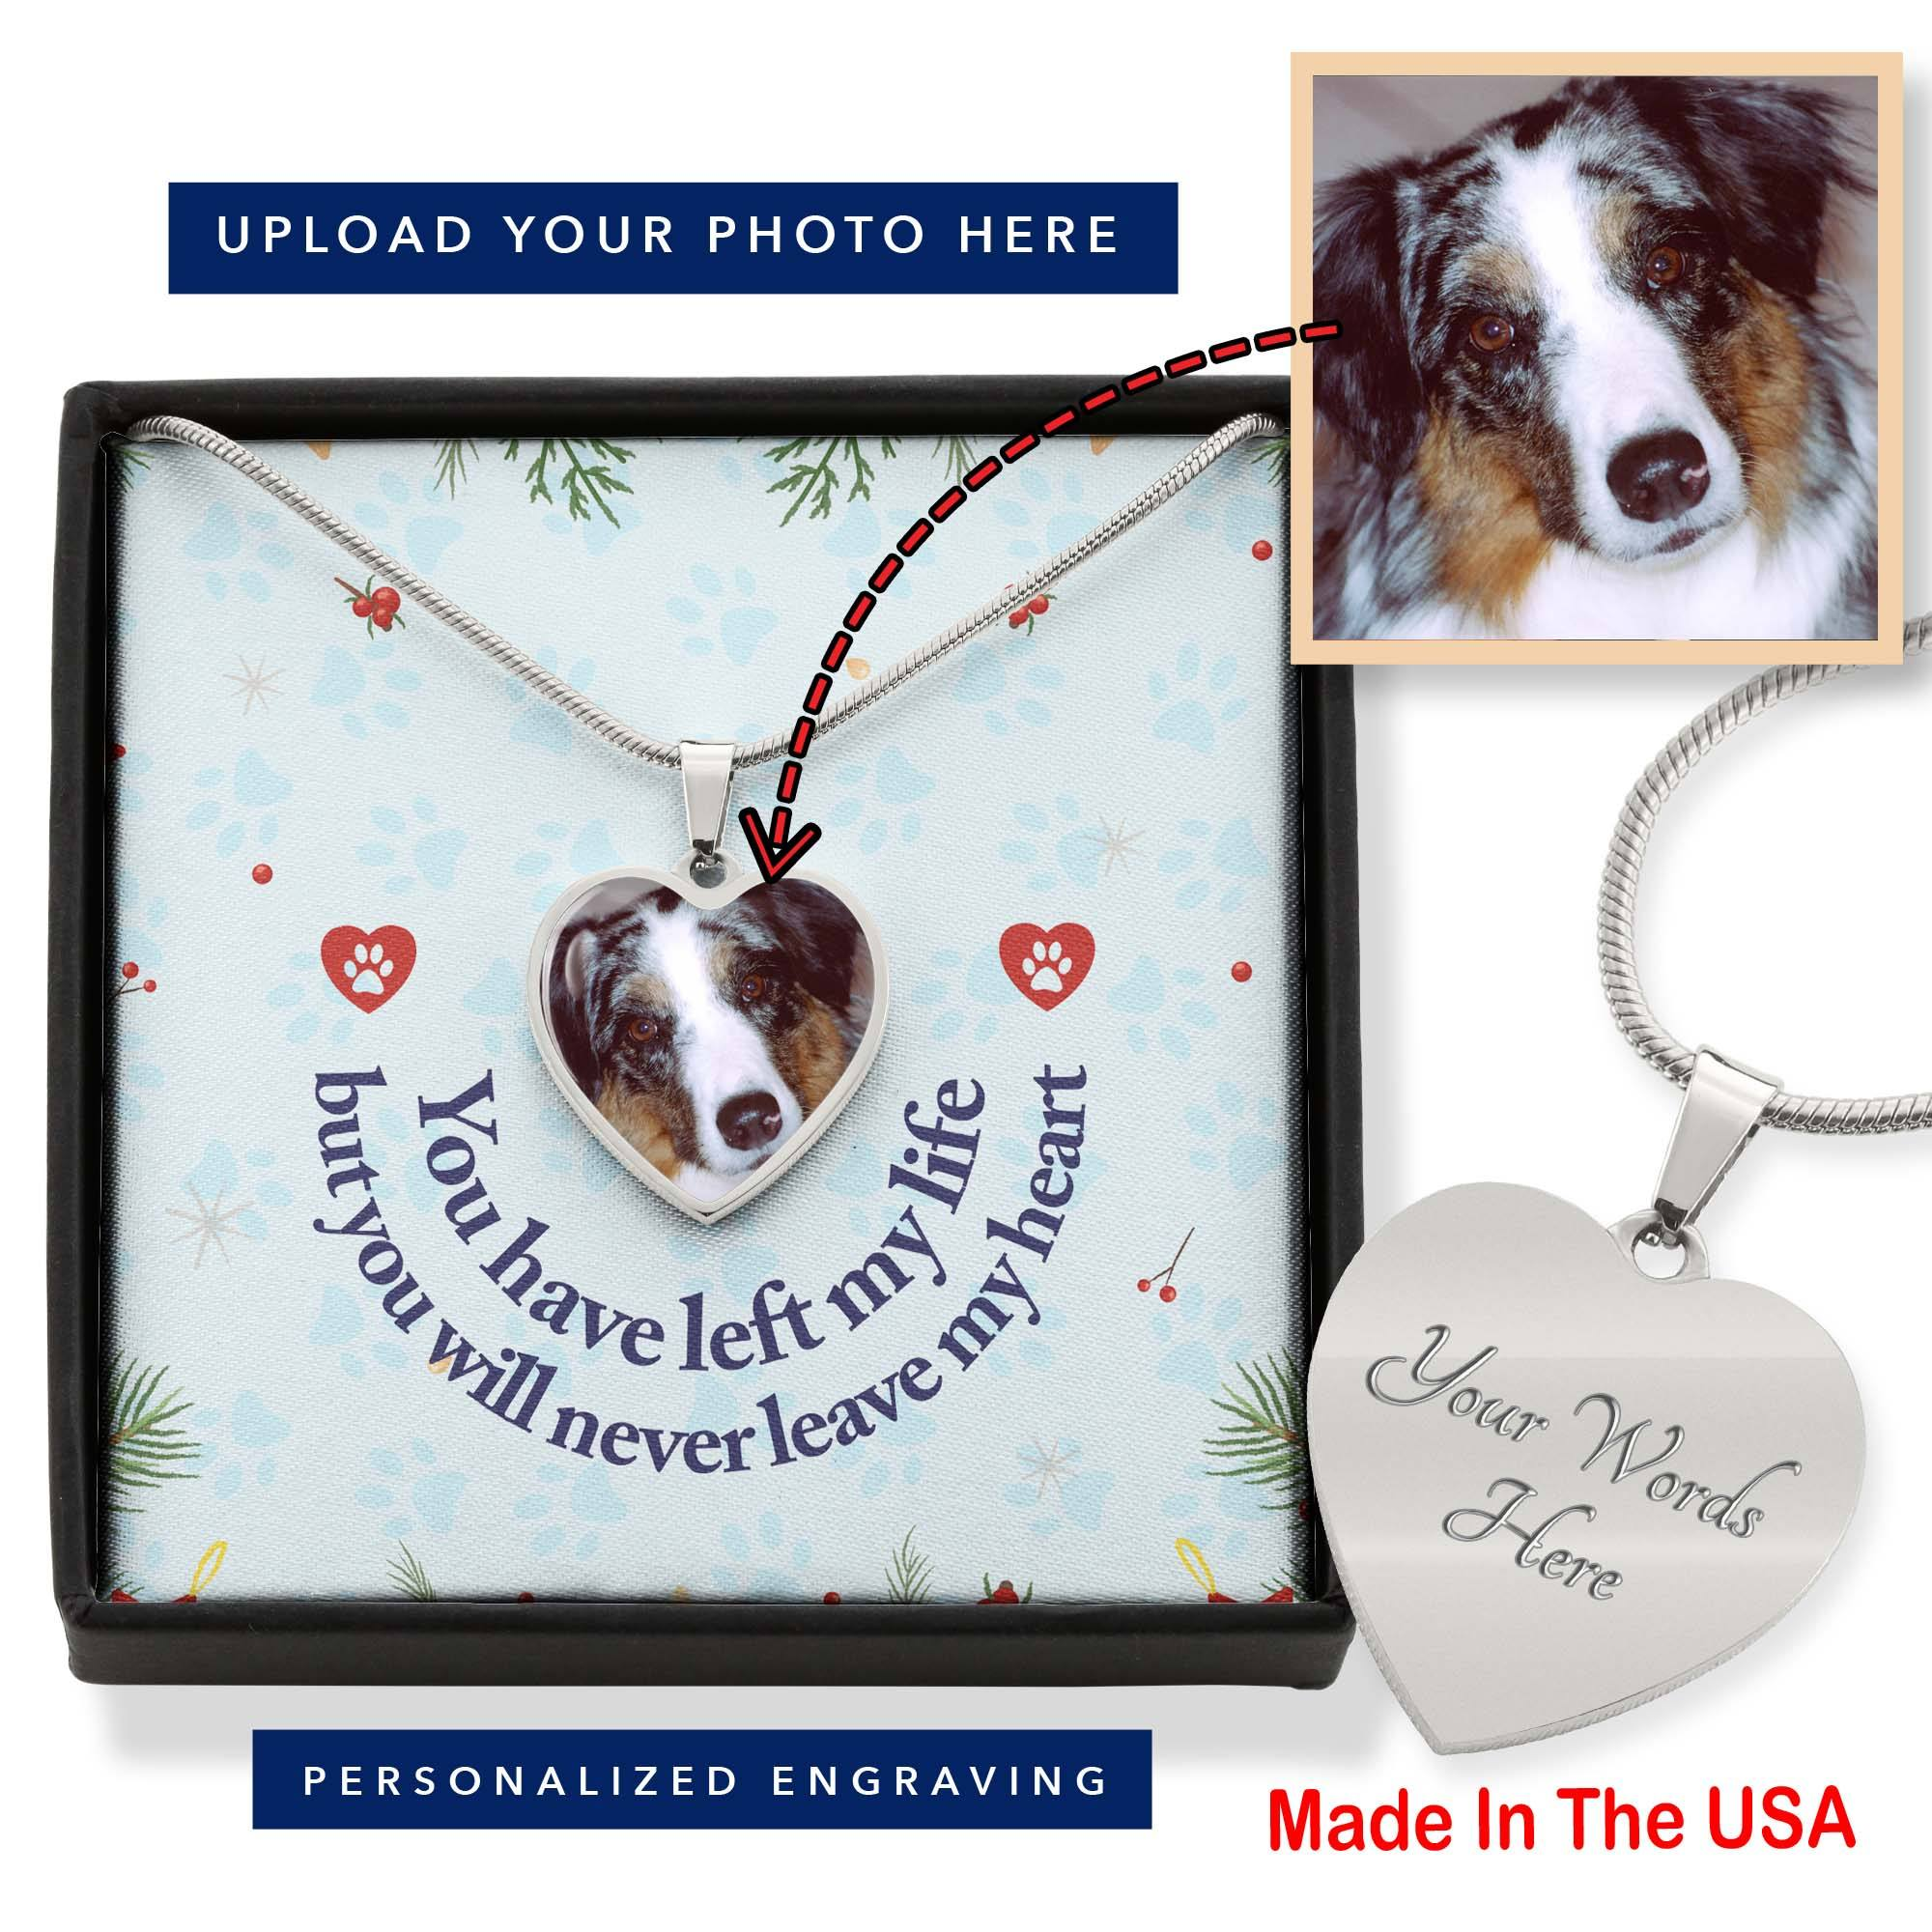 Pet Remembrance Necklace - Upload Photo and Engrave